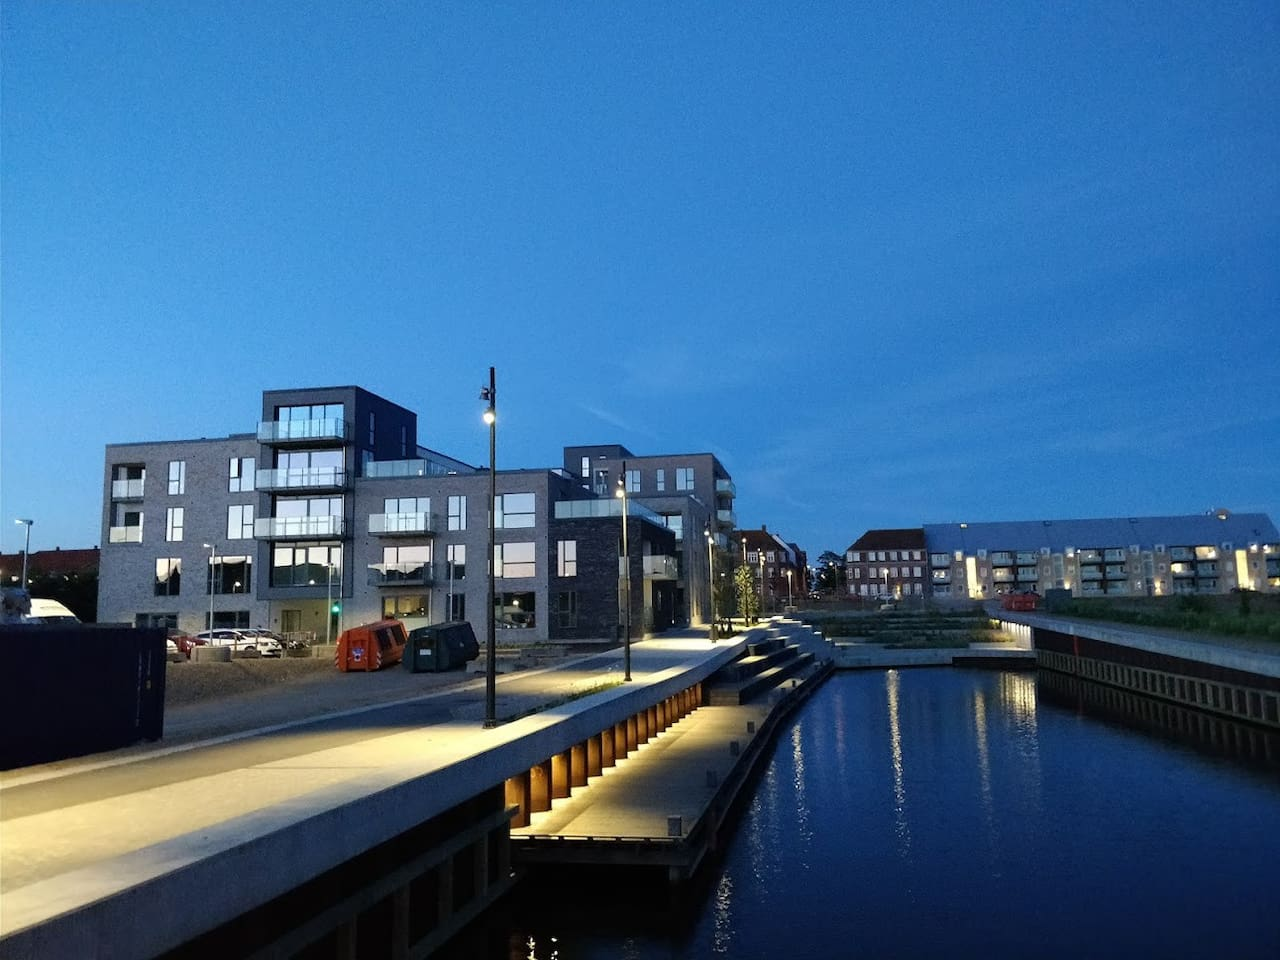 The new canal area right next to the apartment. Perfect for walking and going for ice cream or similar around.